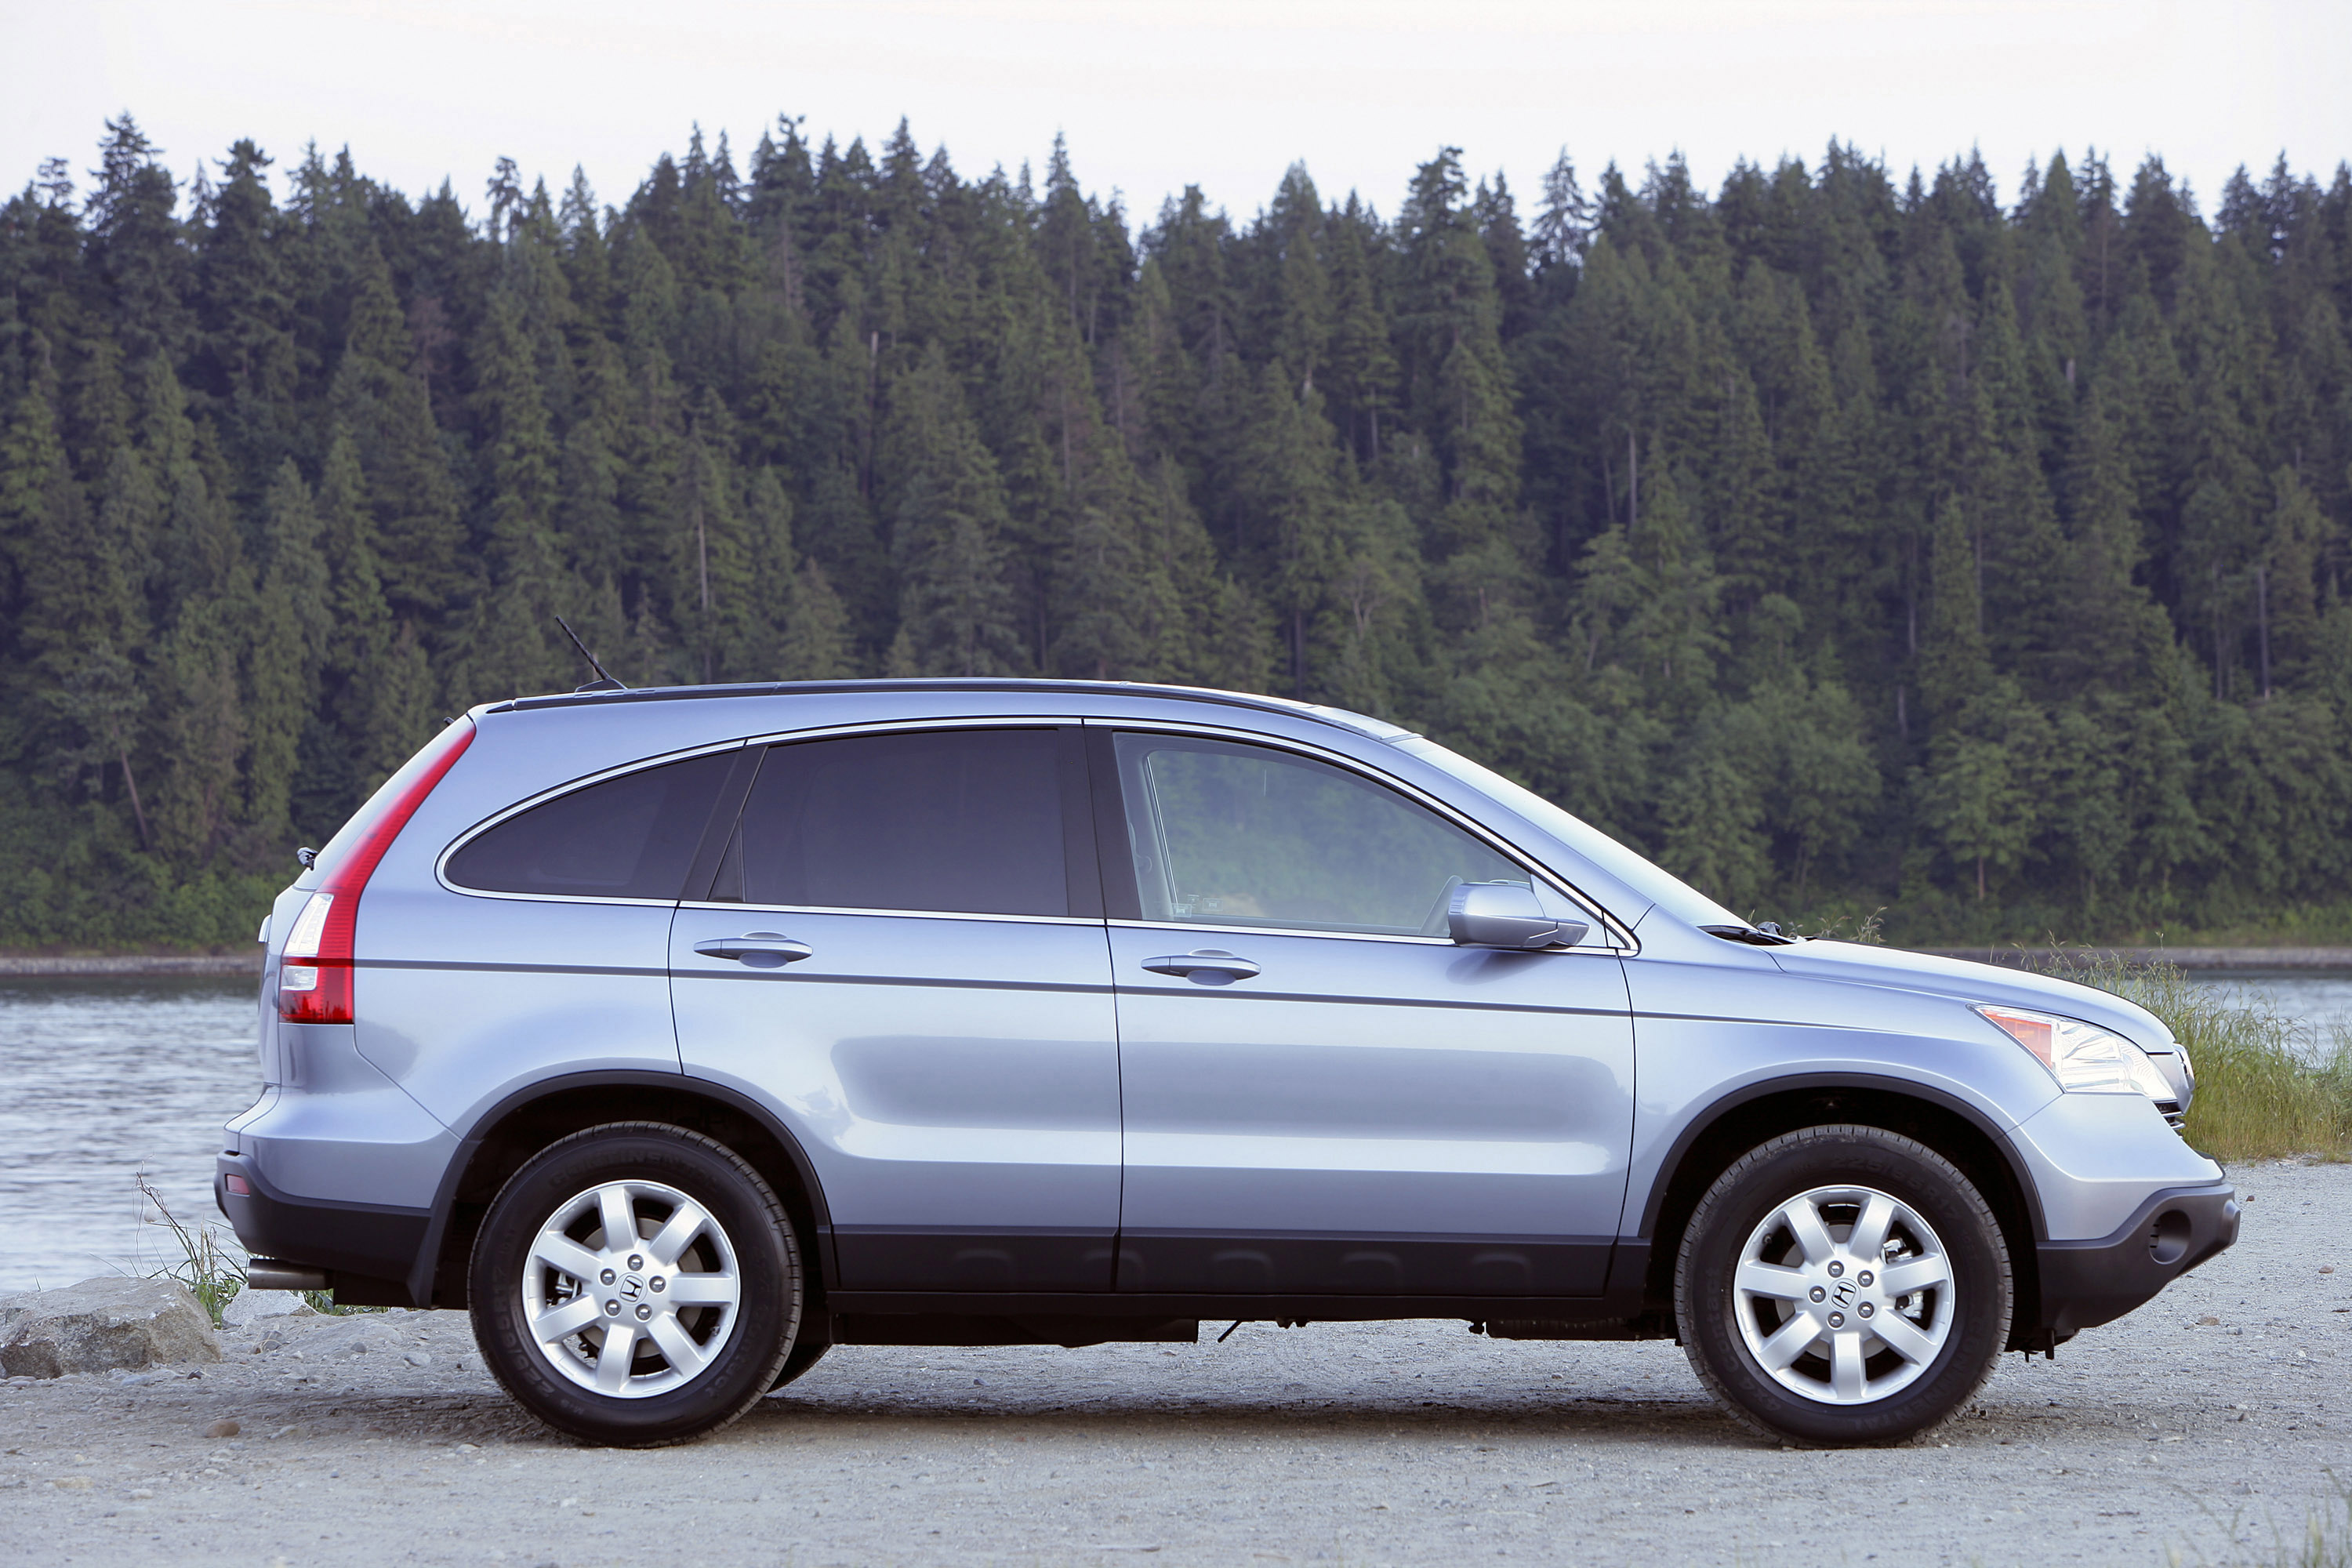 2009 honda cr v delivers refined and stylish approach to entry suv segment. Black Bedroom Furniture Sets. Home Design Ideas